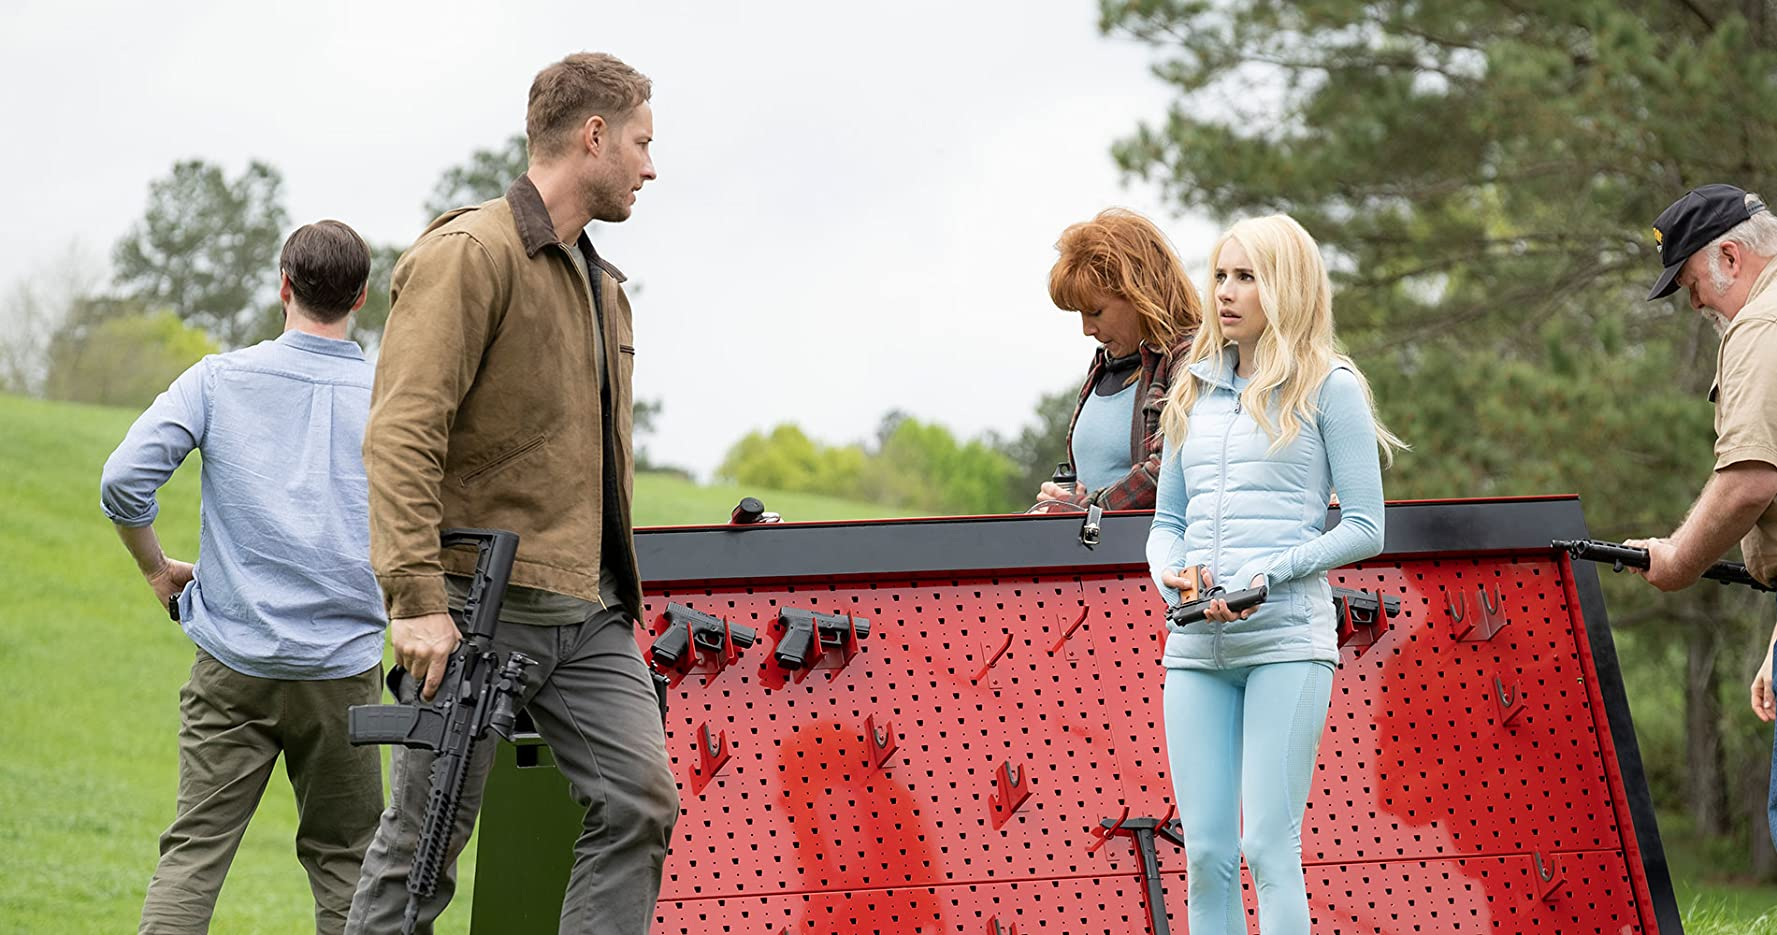 Ike Barinholtz, Wayne Duvall, Emma Roberts, Justin Hartley, and Kate Nowlin in The Hunt (2020)